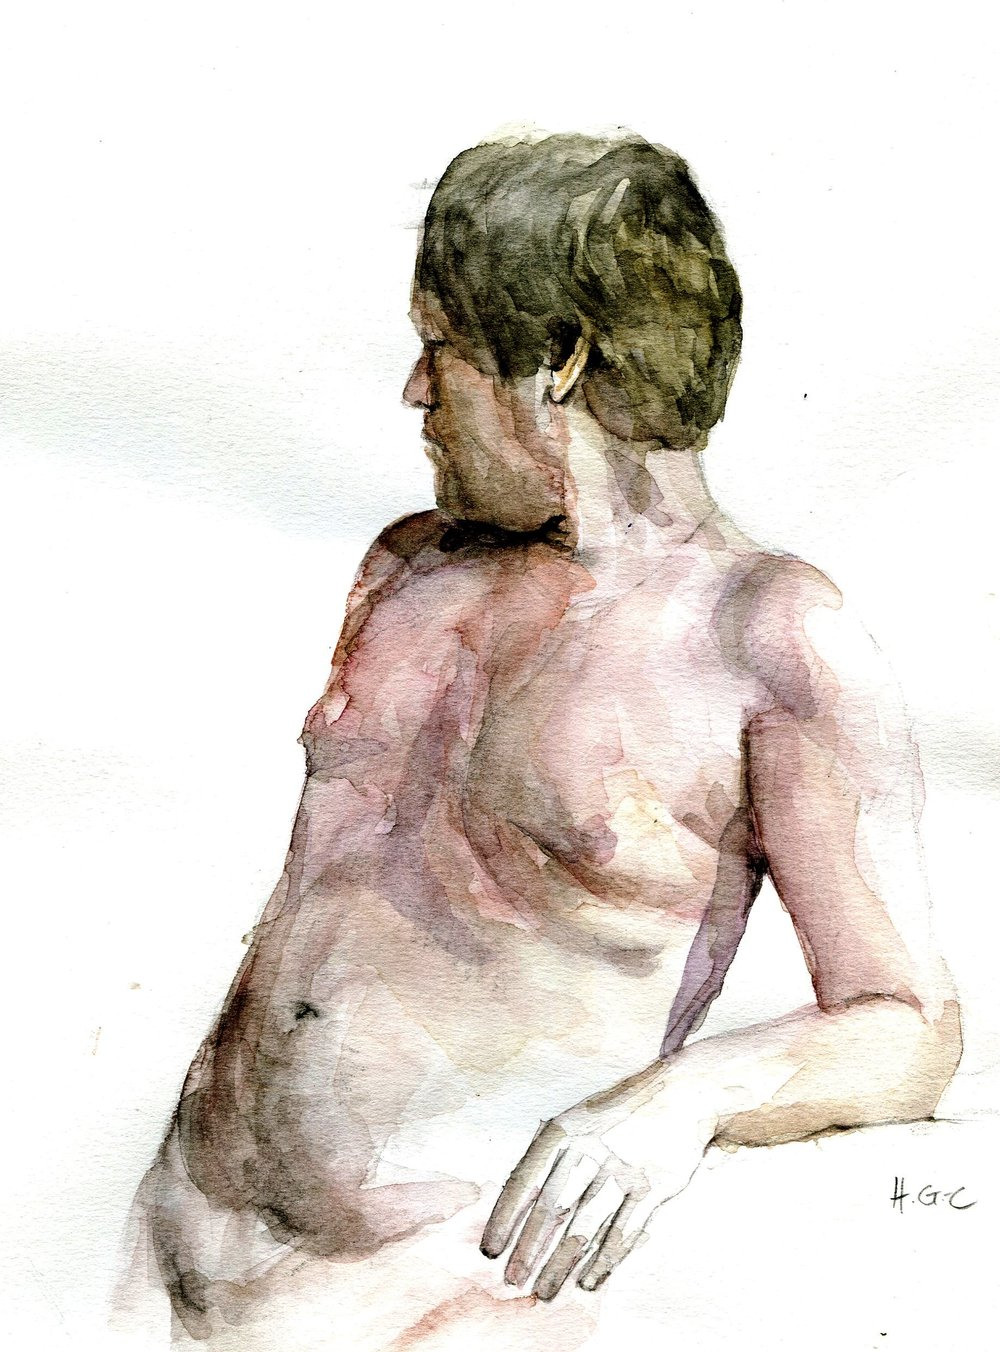 99b Heather Gourlay-Conyngham, Figure Study, Watercolour on paper